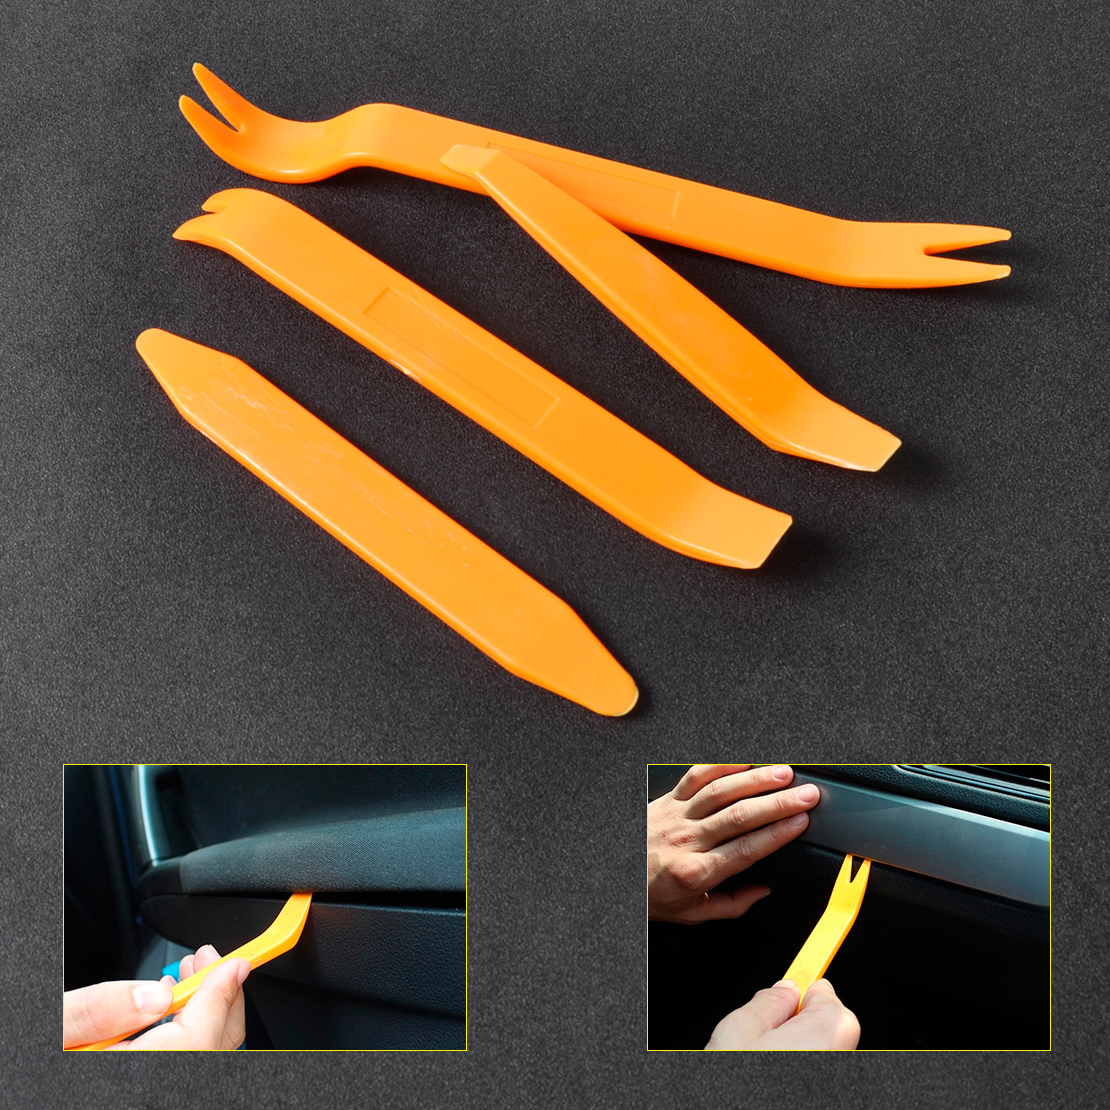 4pcs Car Door Plastic Trim Panel Dash Installation Removal Pry Tool 1975 Plymouth Duster Wiring Diagram Item Specifics